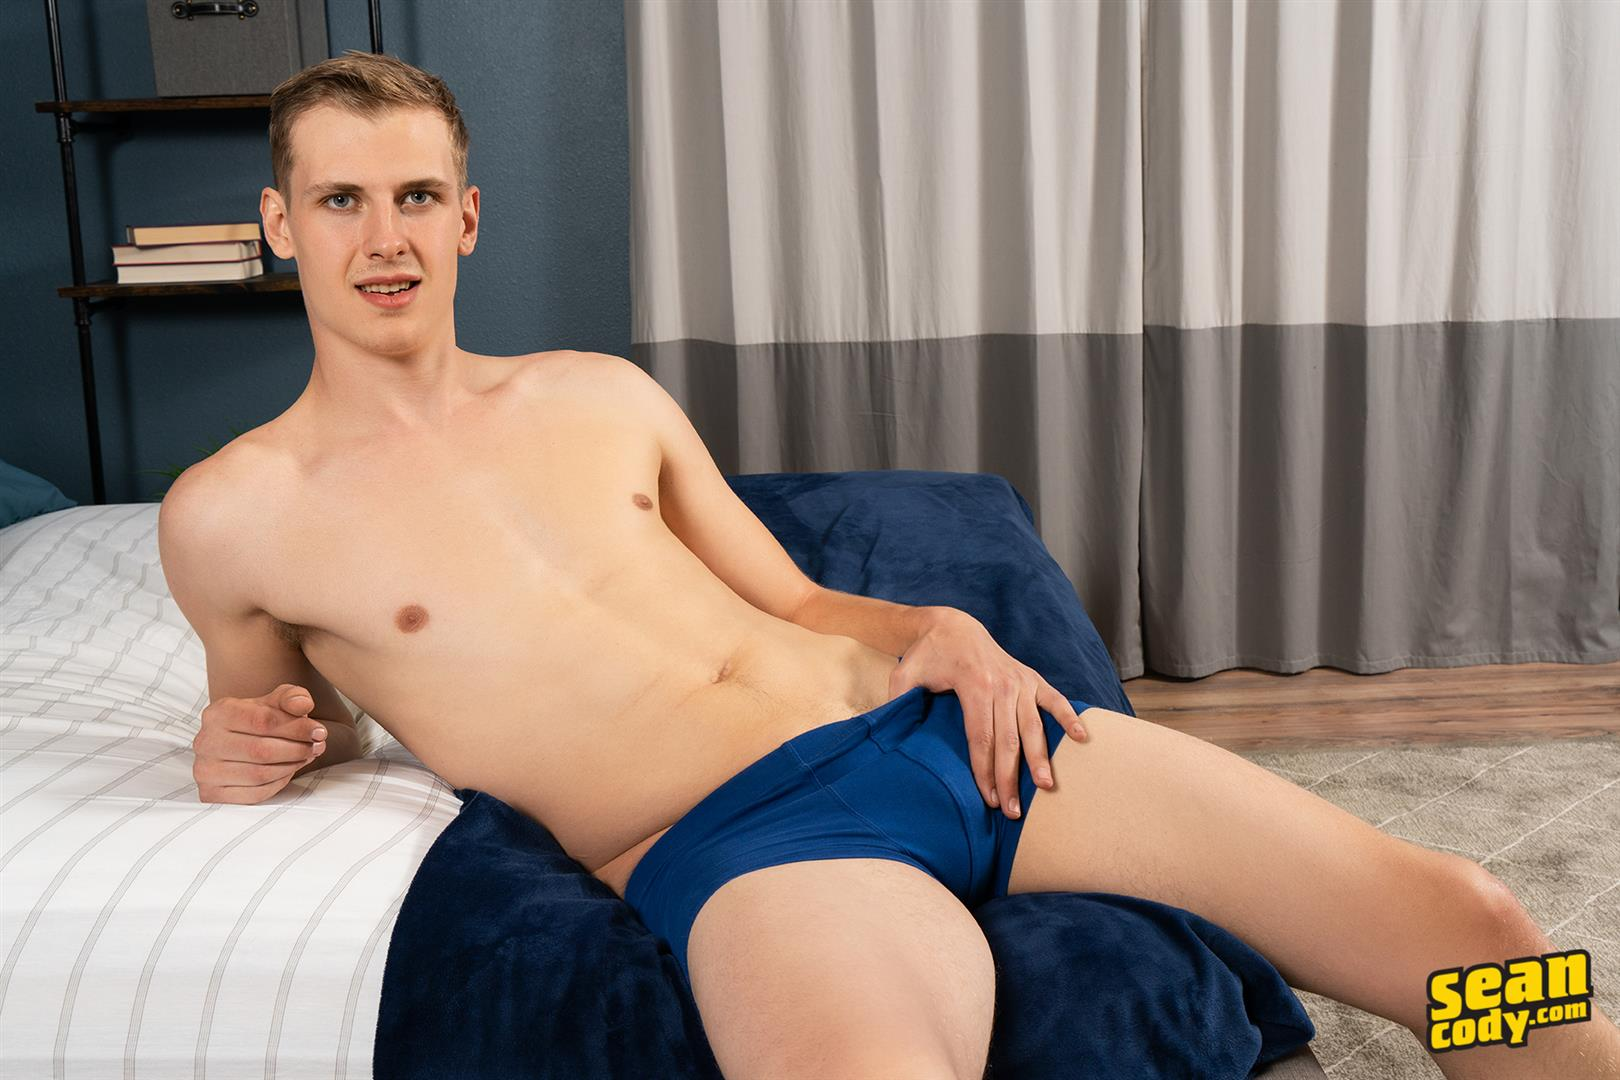 Sean-Cody-Mick-Big-Dick-Bisexual-Blue-Collar-Guy-Masturbating-02 Check Out The Cock On This Young Bisexual Blue Collar Stud